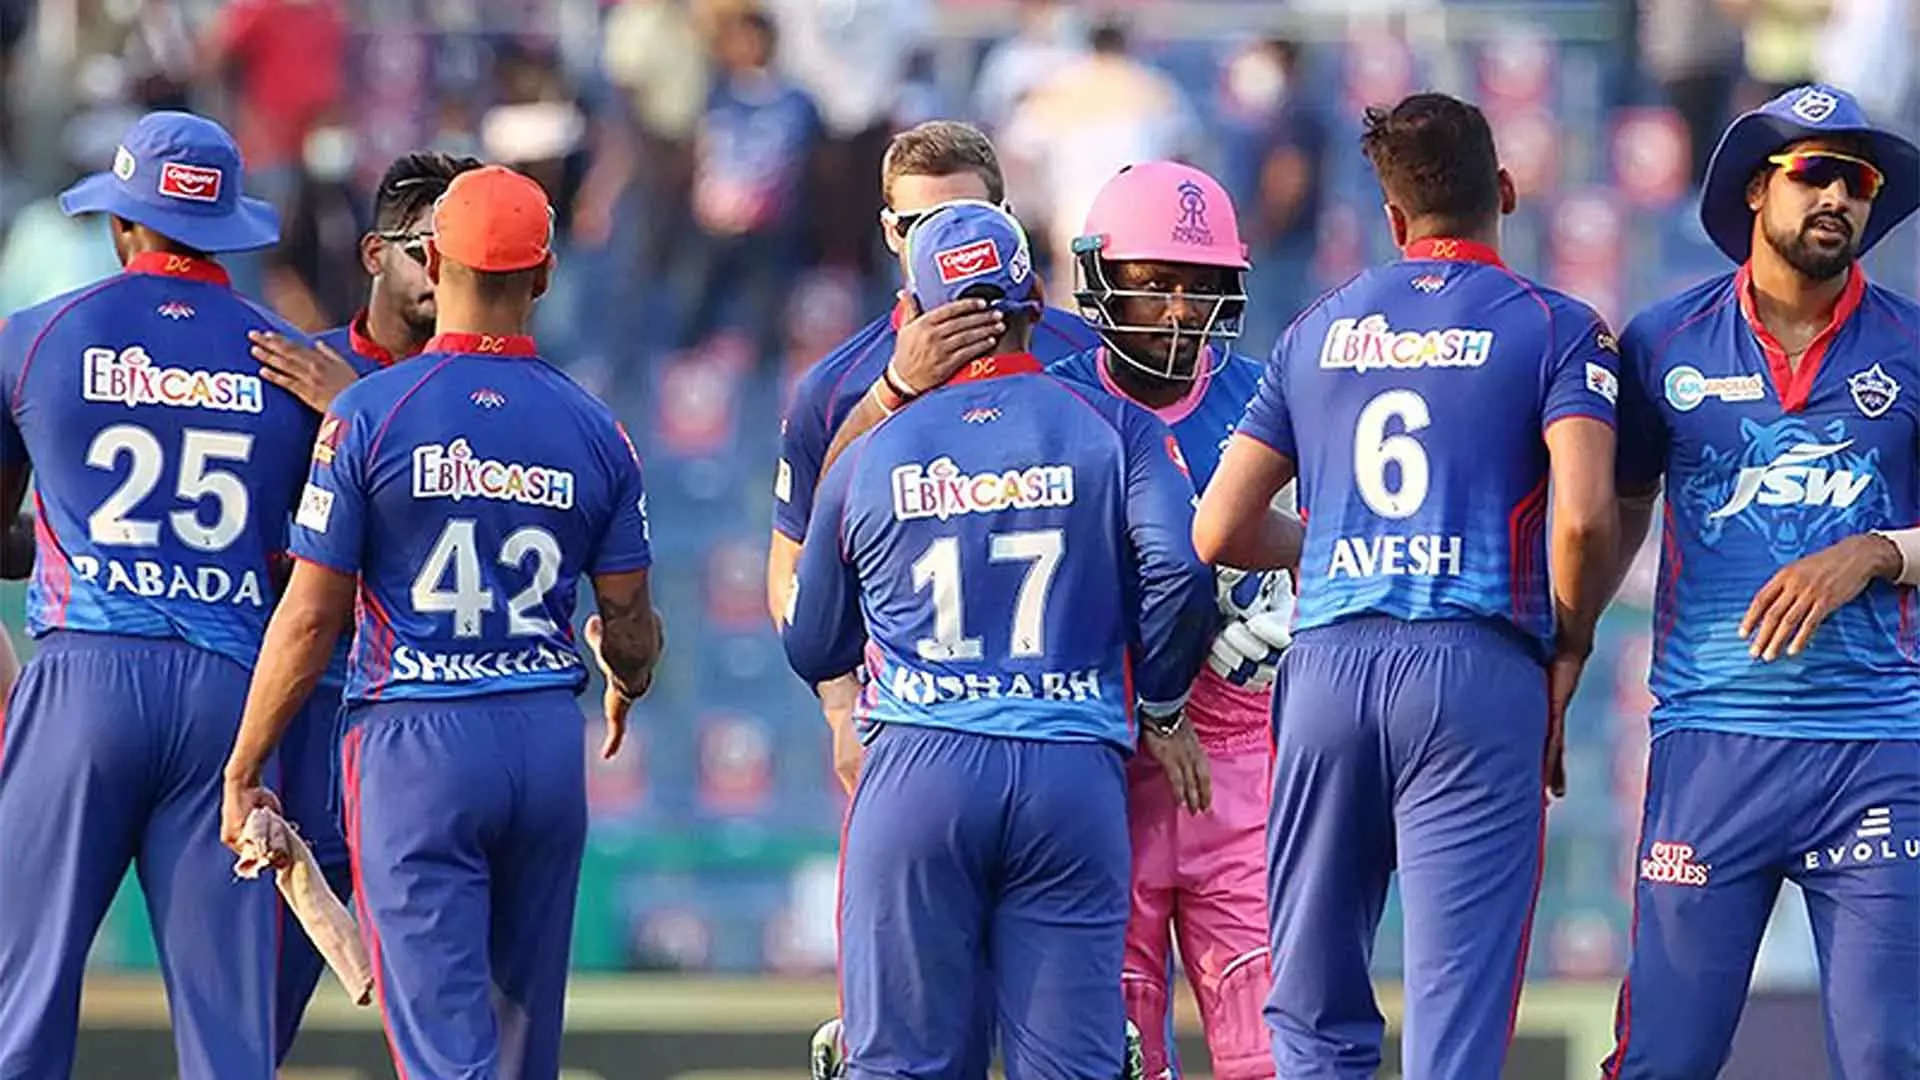 IN PICS: How Delhi beat Rajasthan to go top of points table